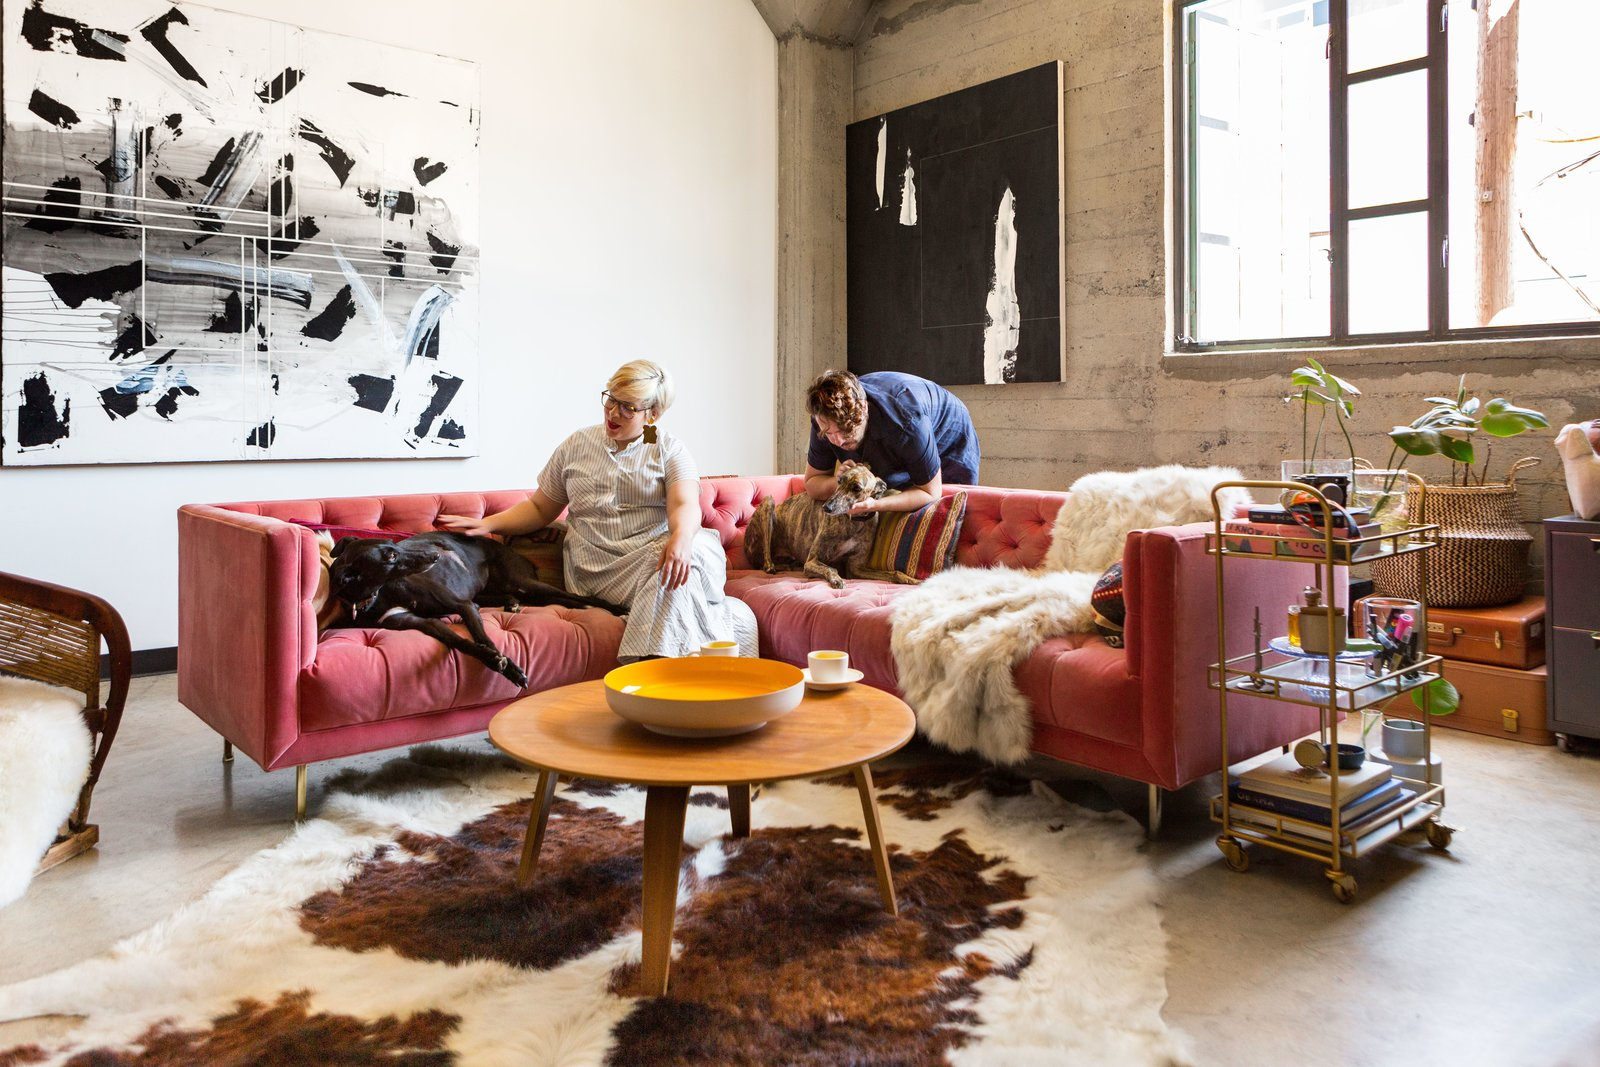 5 Fantastic Home Renovations in California That Cost Less Than $200K